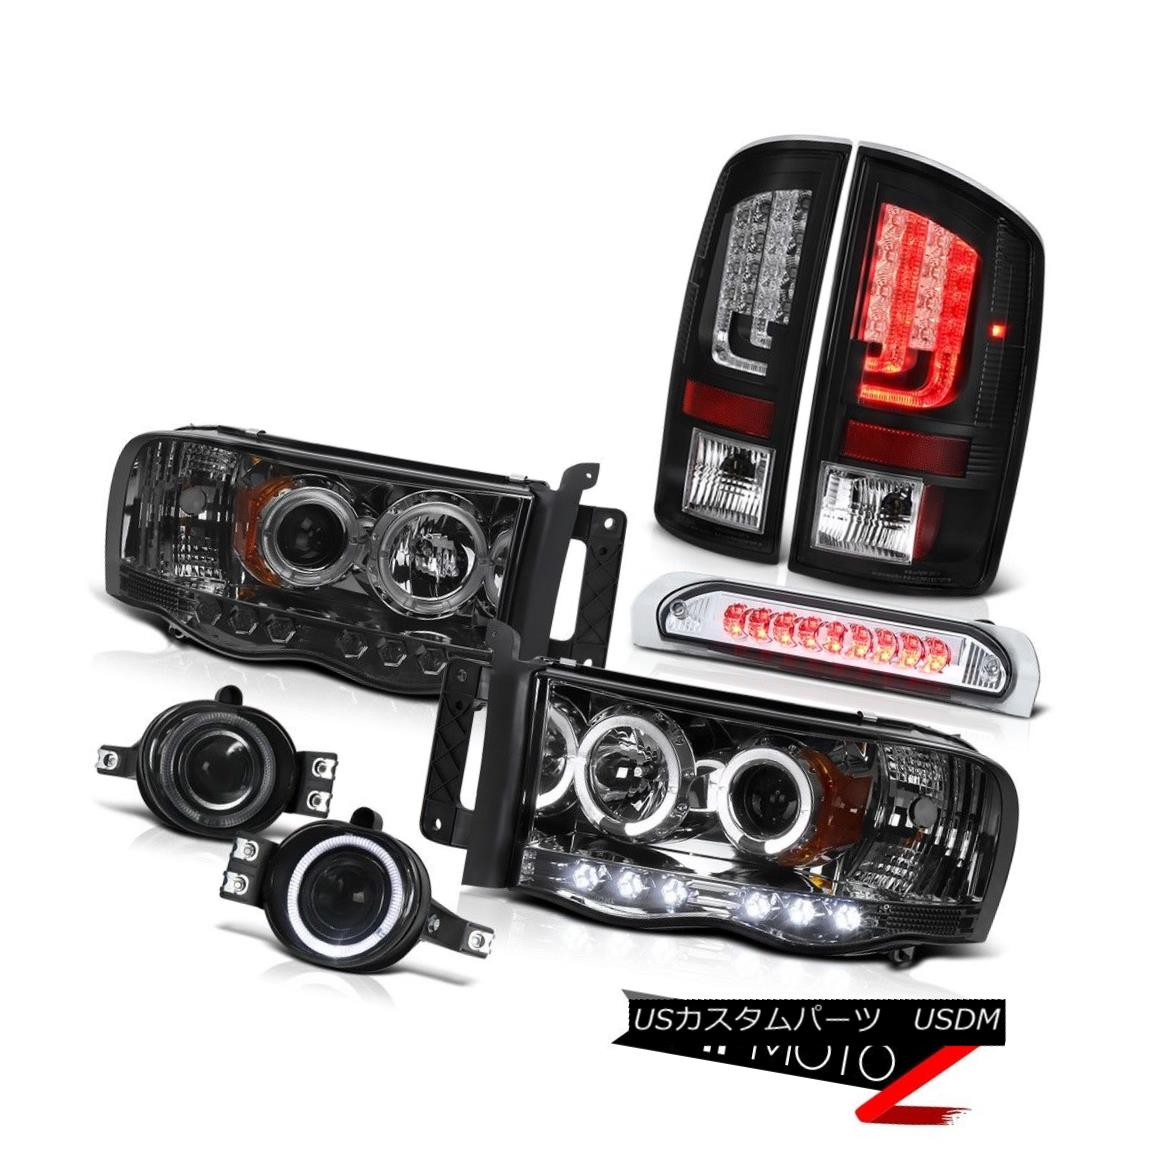 テールライト 2002-2005 Dodge Ram 1500 ST Tail Lamps Headlamps Fog Third Brake Lamp Tron Tube 2002-2005 Dodge Ram 1500 STテールランプヘッドランプフォグ第3ブレーキランプTron Tube